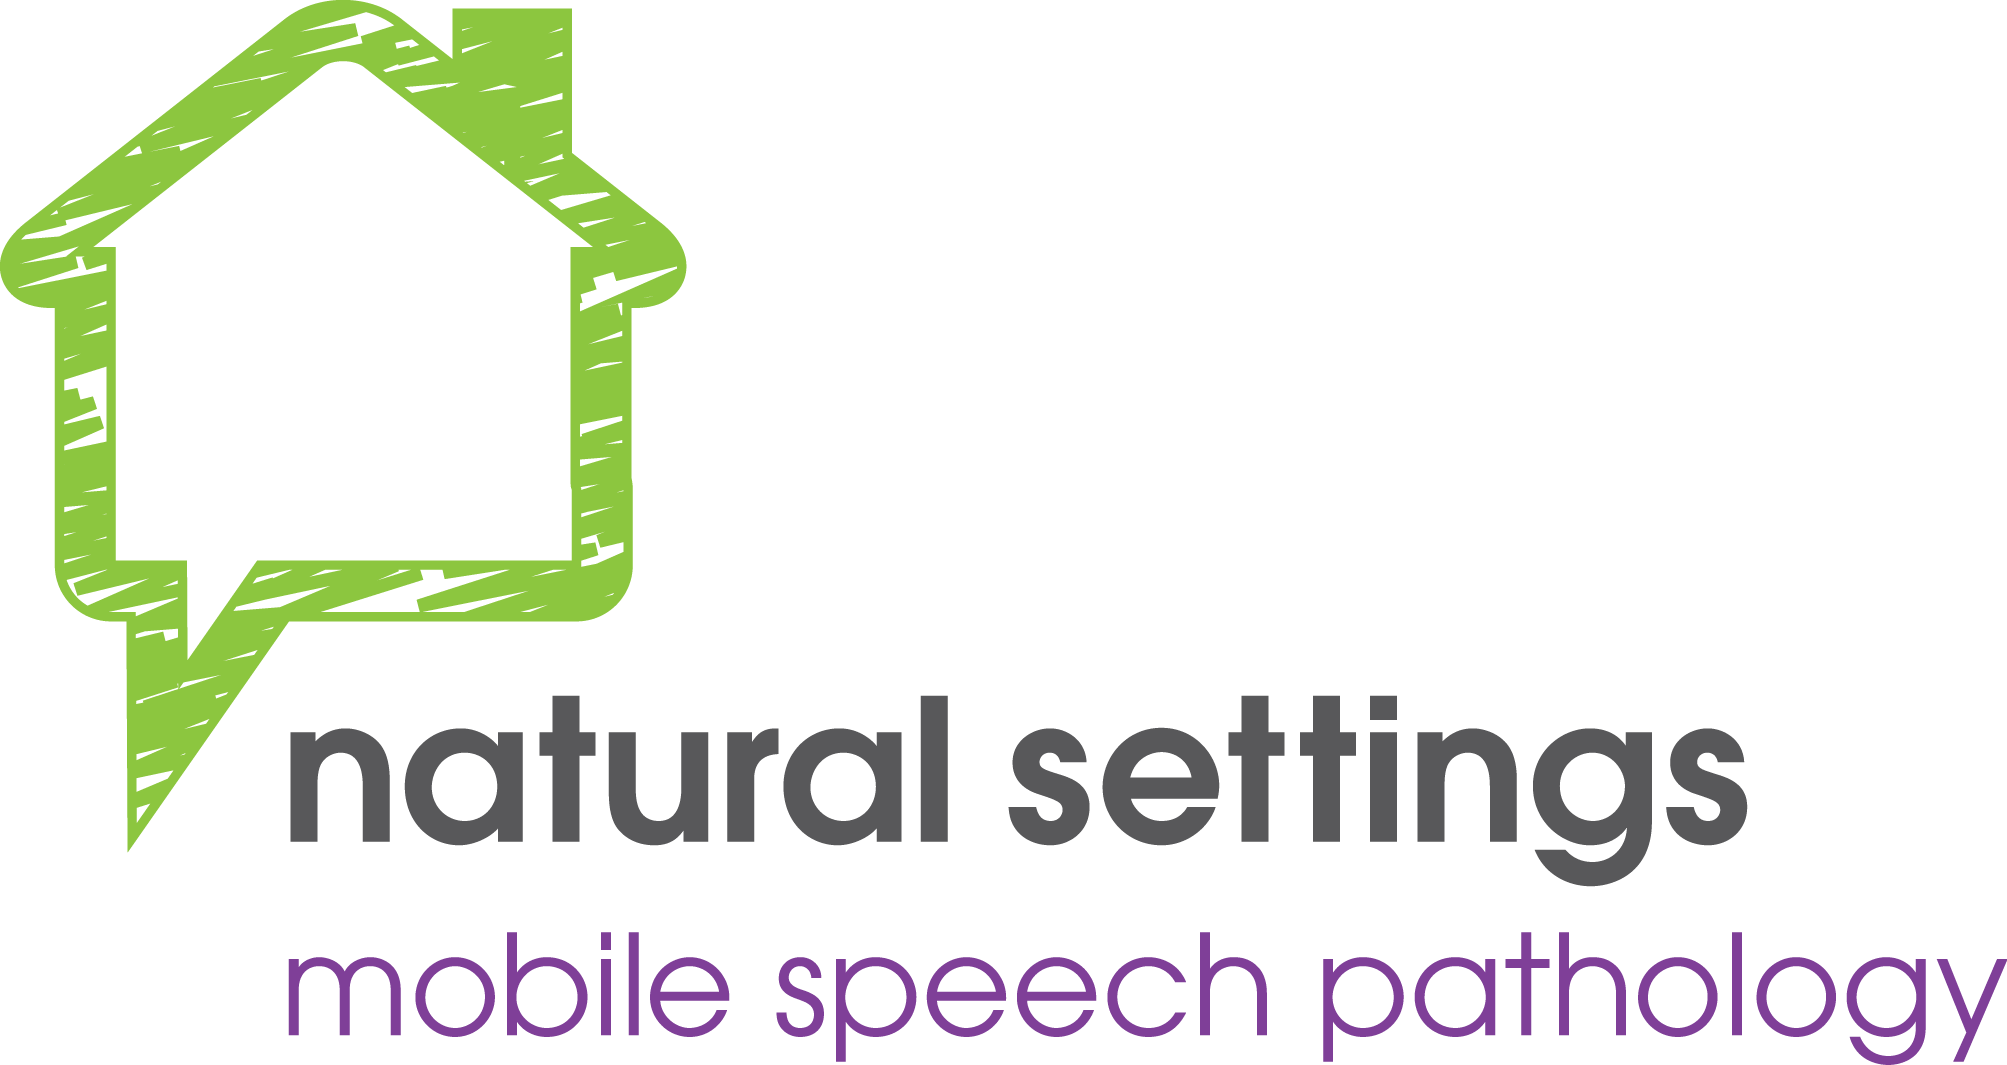 Natural Settings Mobile Speech Pathology